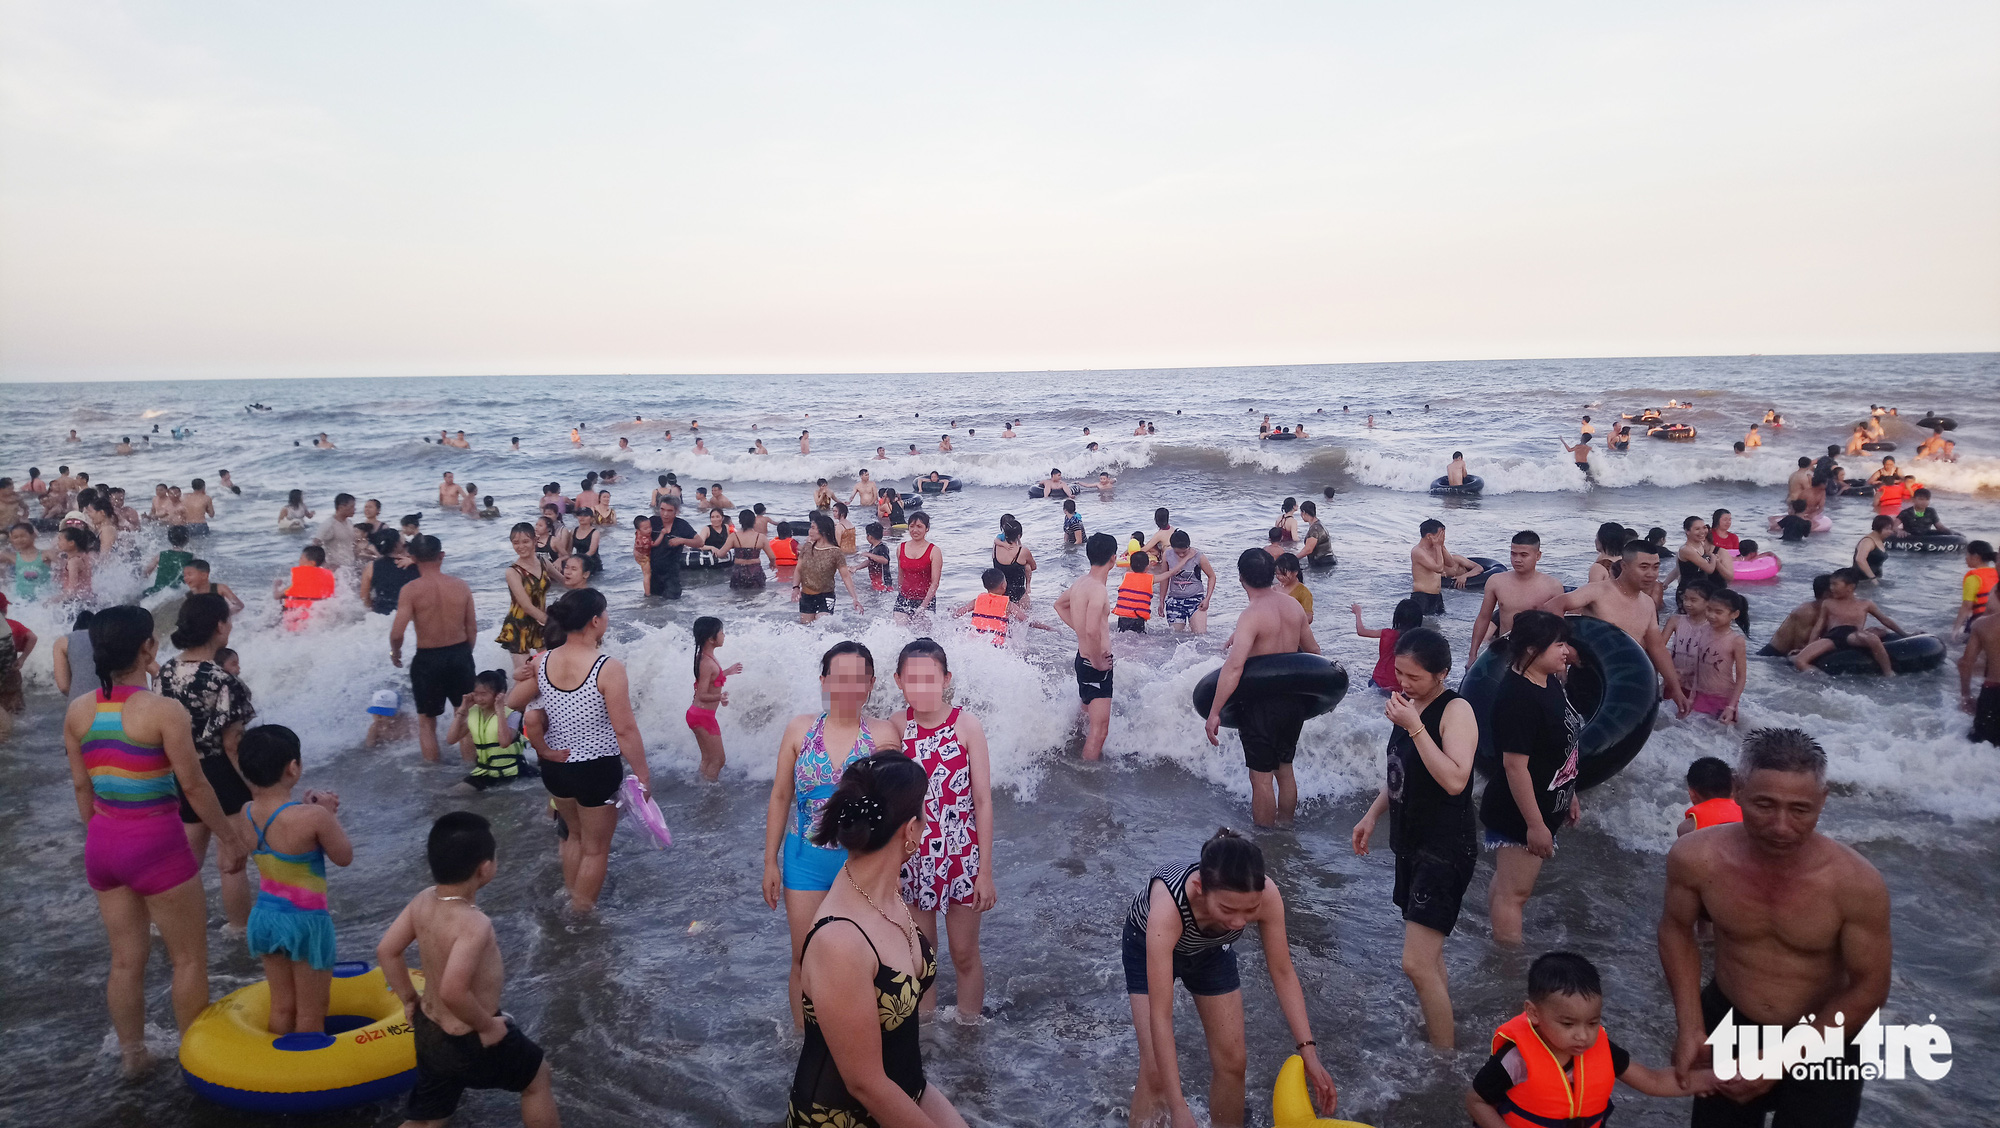 Mass cancellations over COVID-19 fear concern hotel owners in north-central Vietnamese beach city